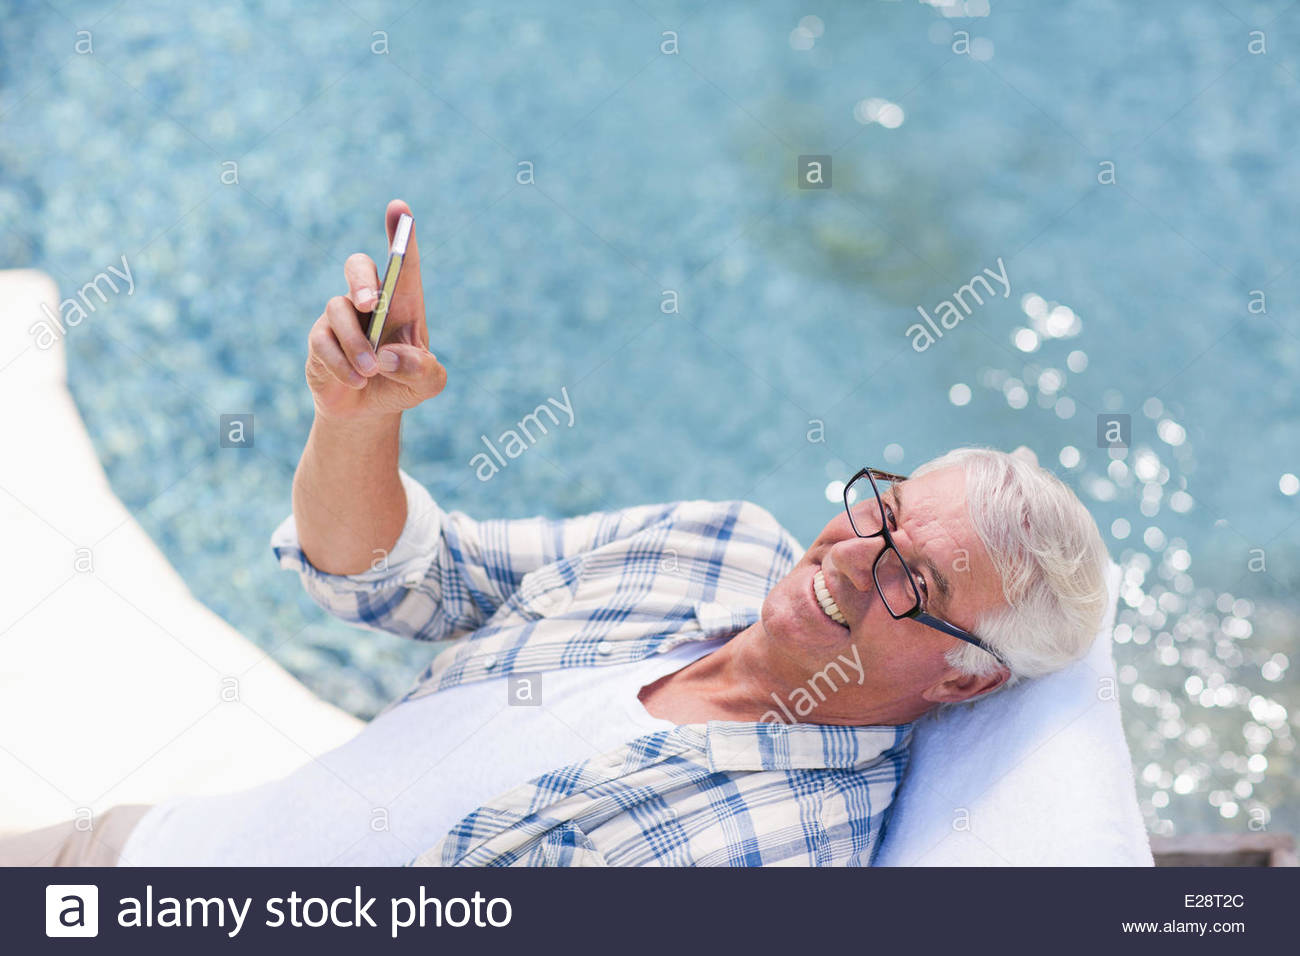 Senior man using cell phone at poolside - Stock Image